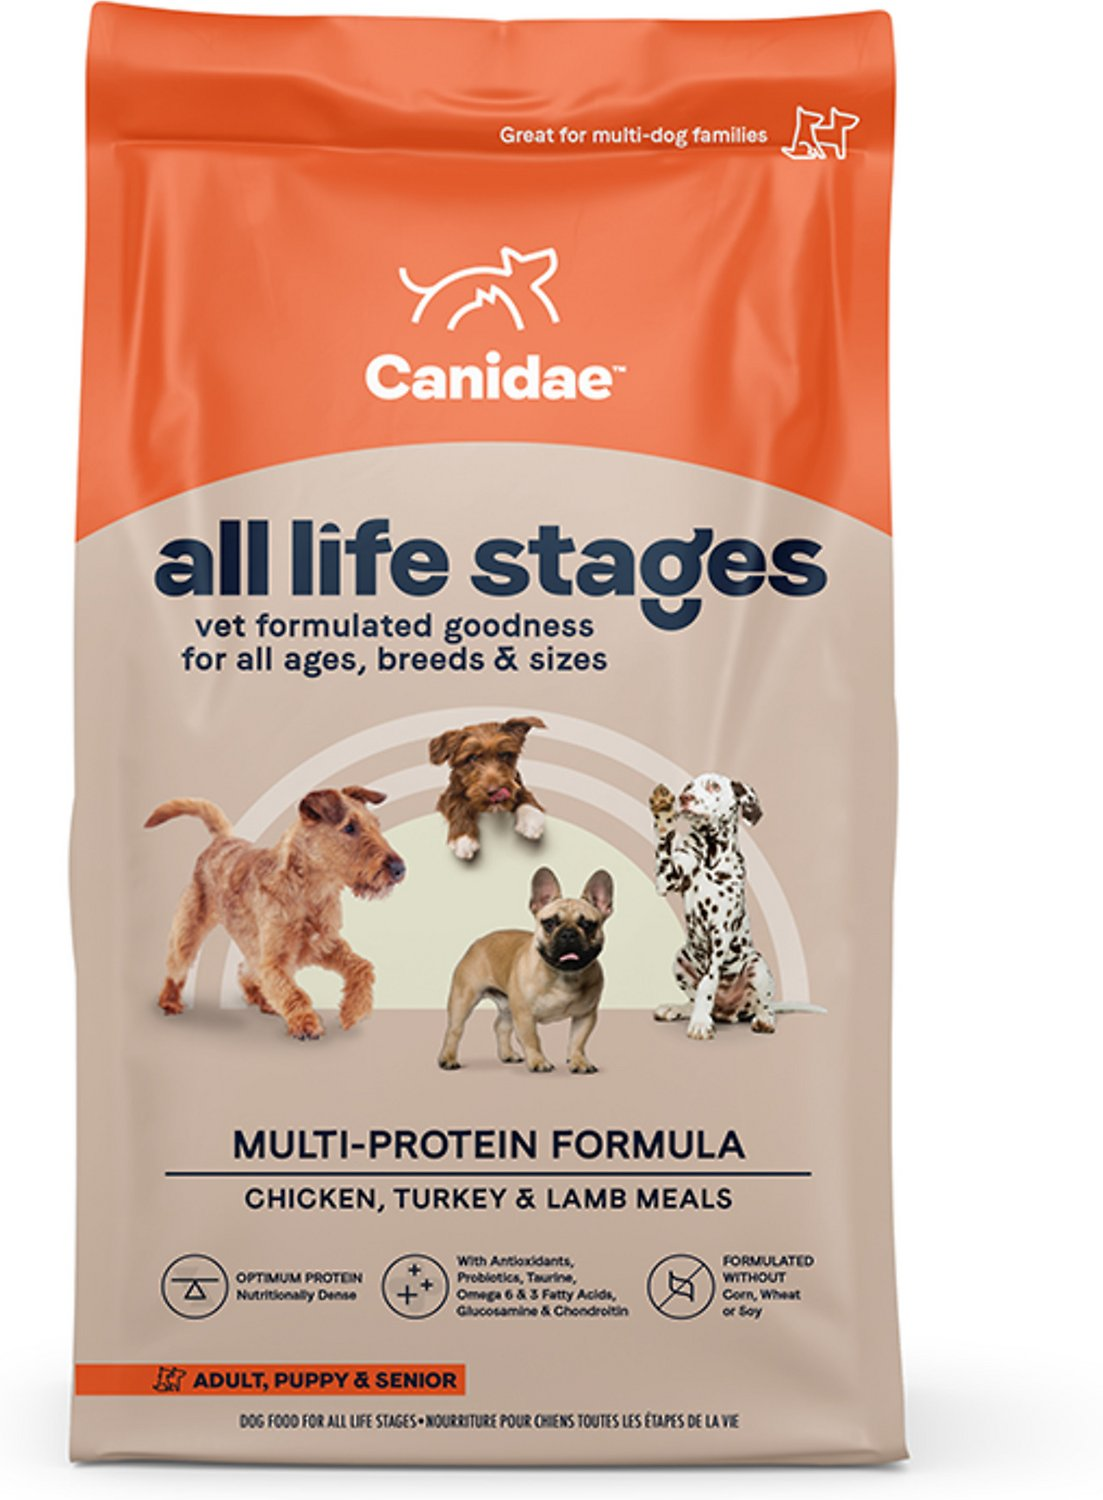 Canidae pet food coupons